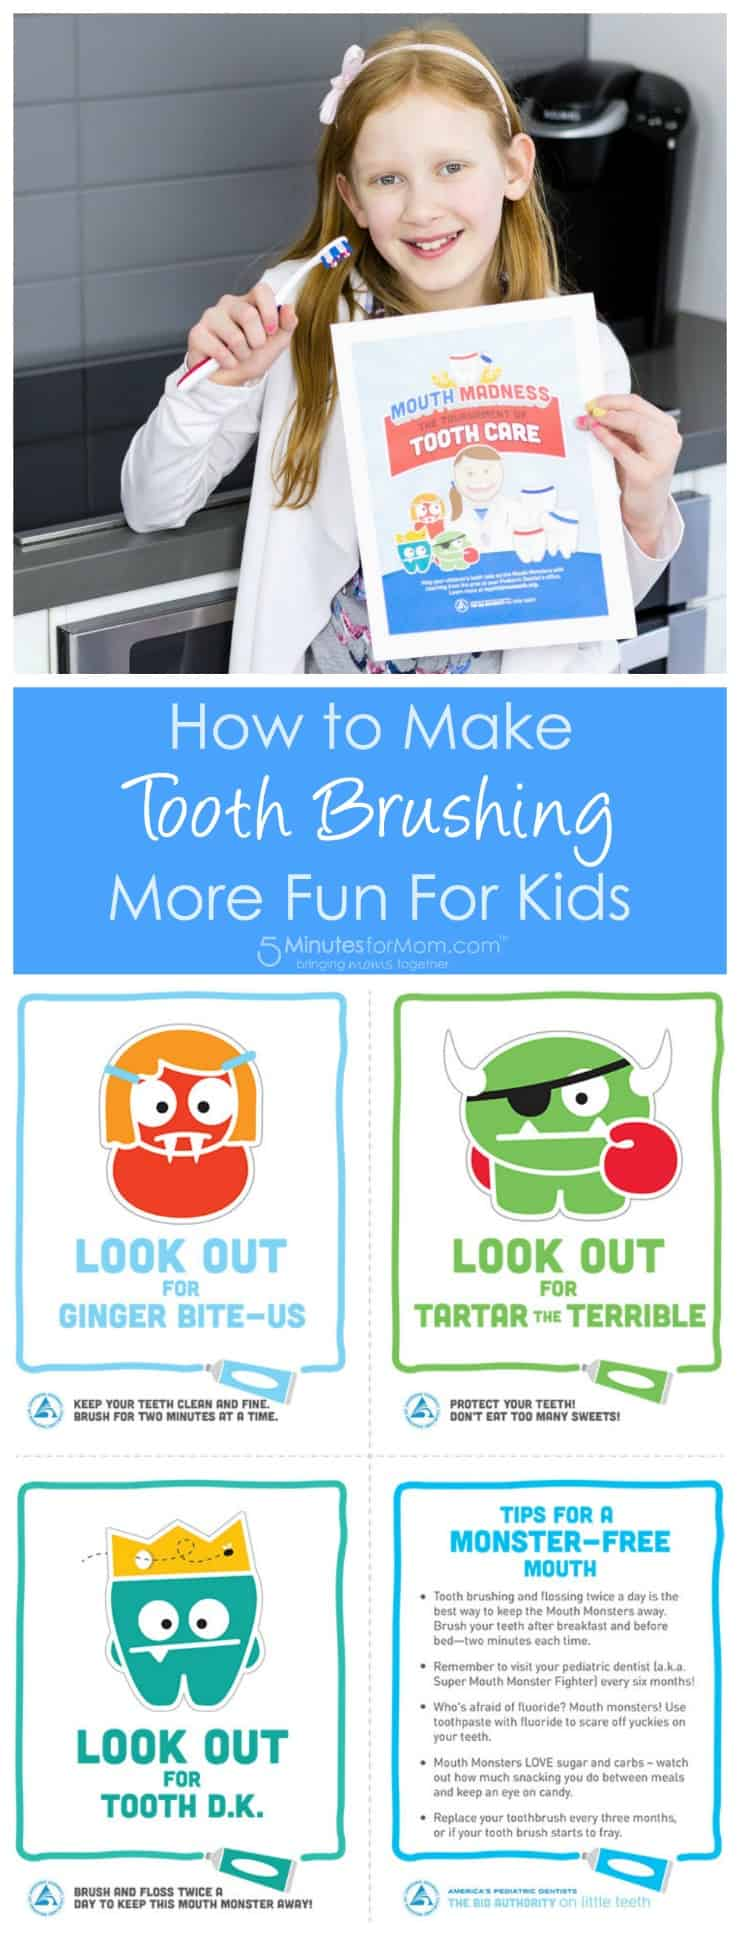 How to Make Tooth Brushing More Fun for Kids